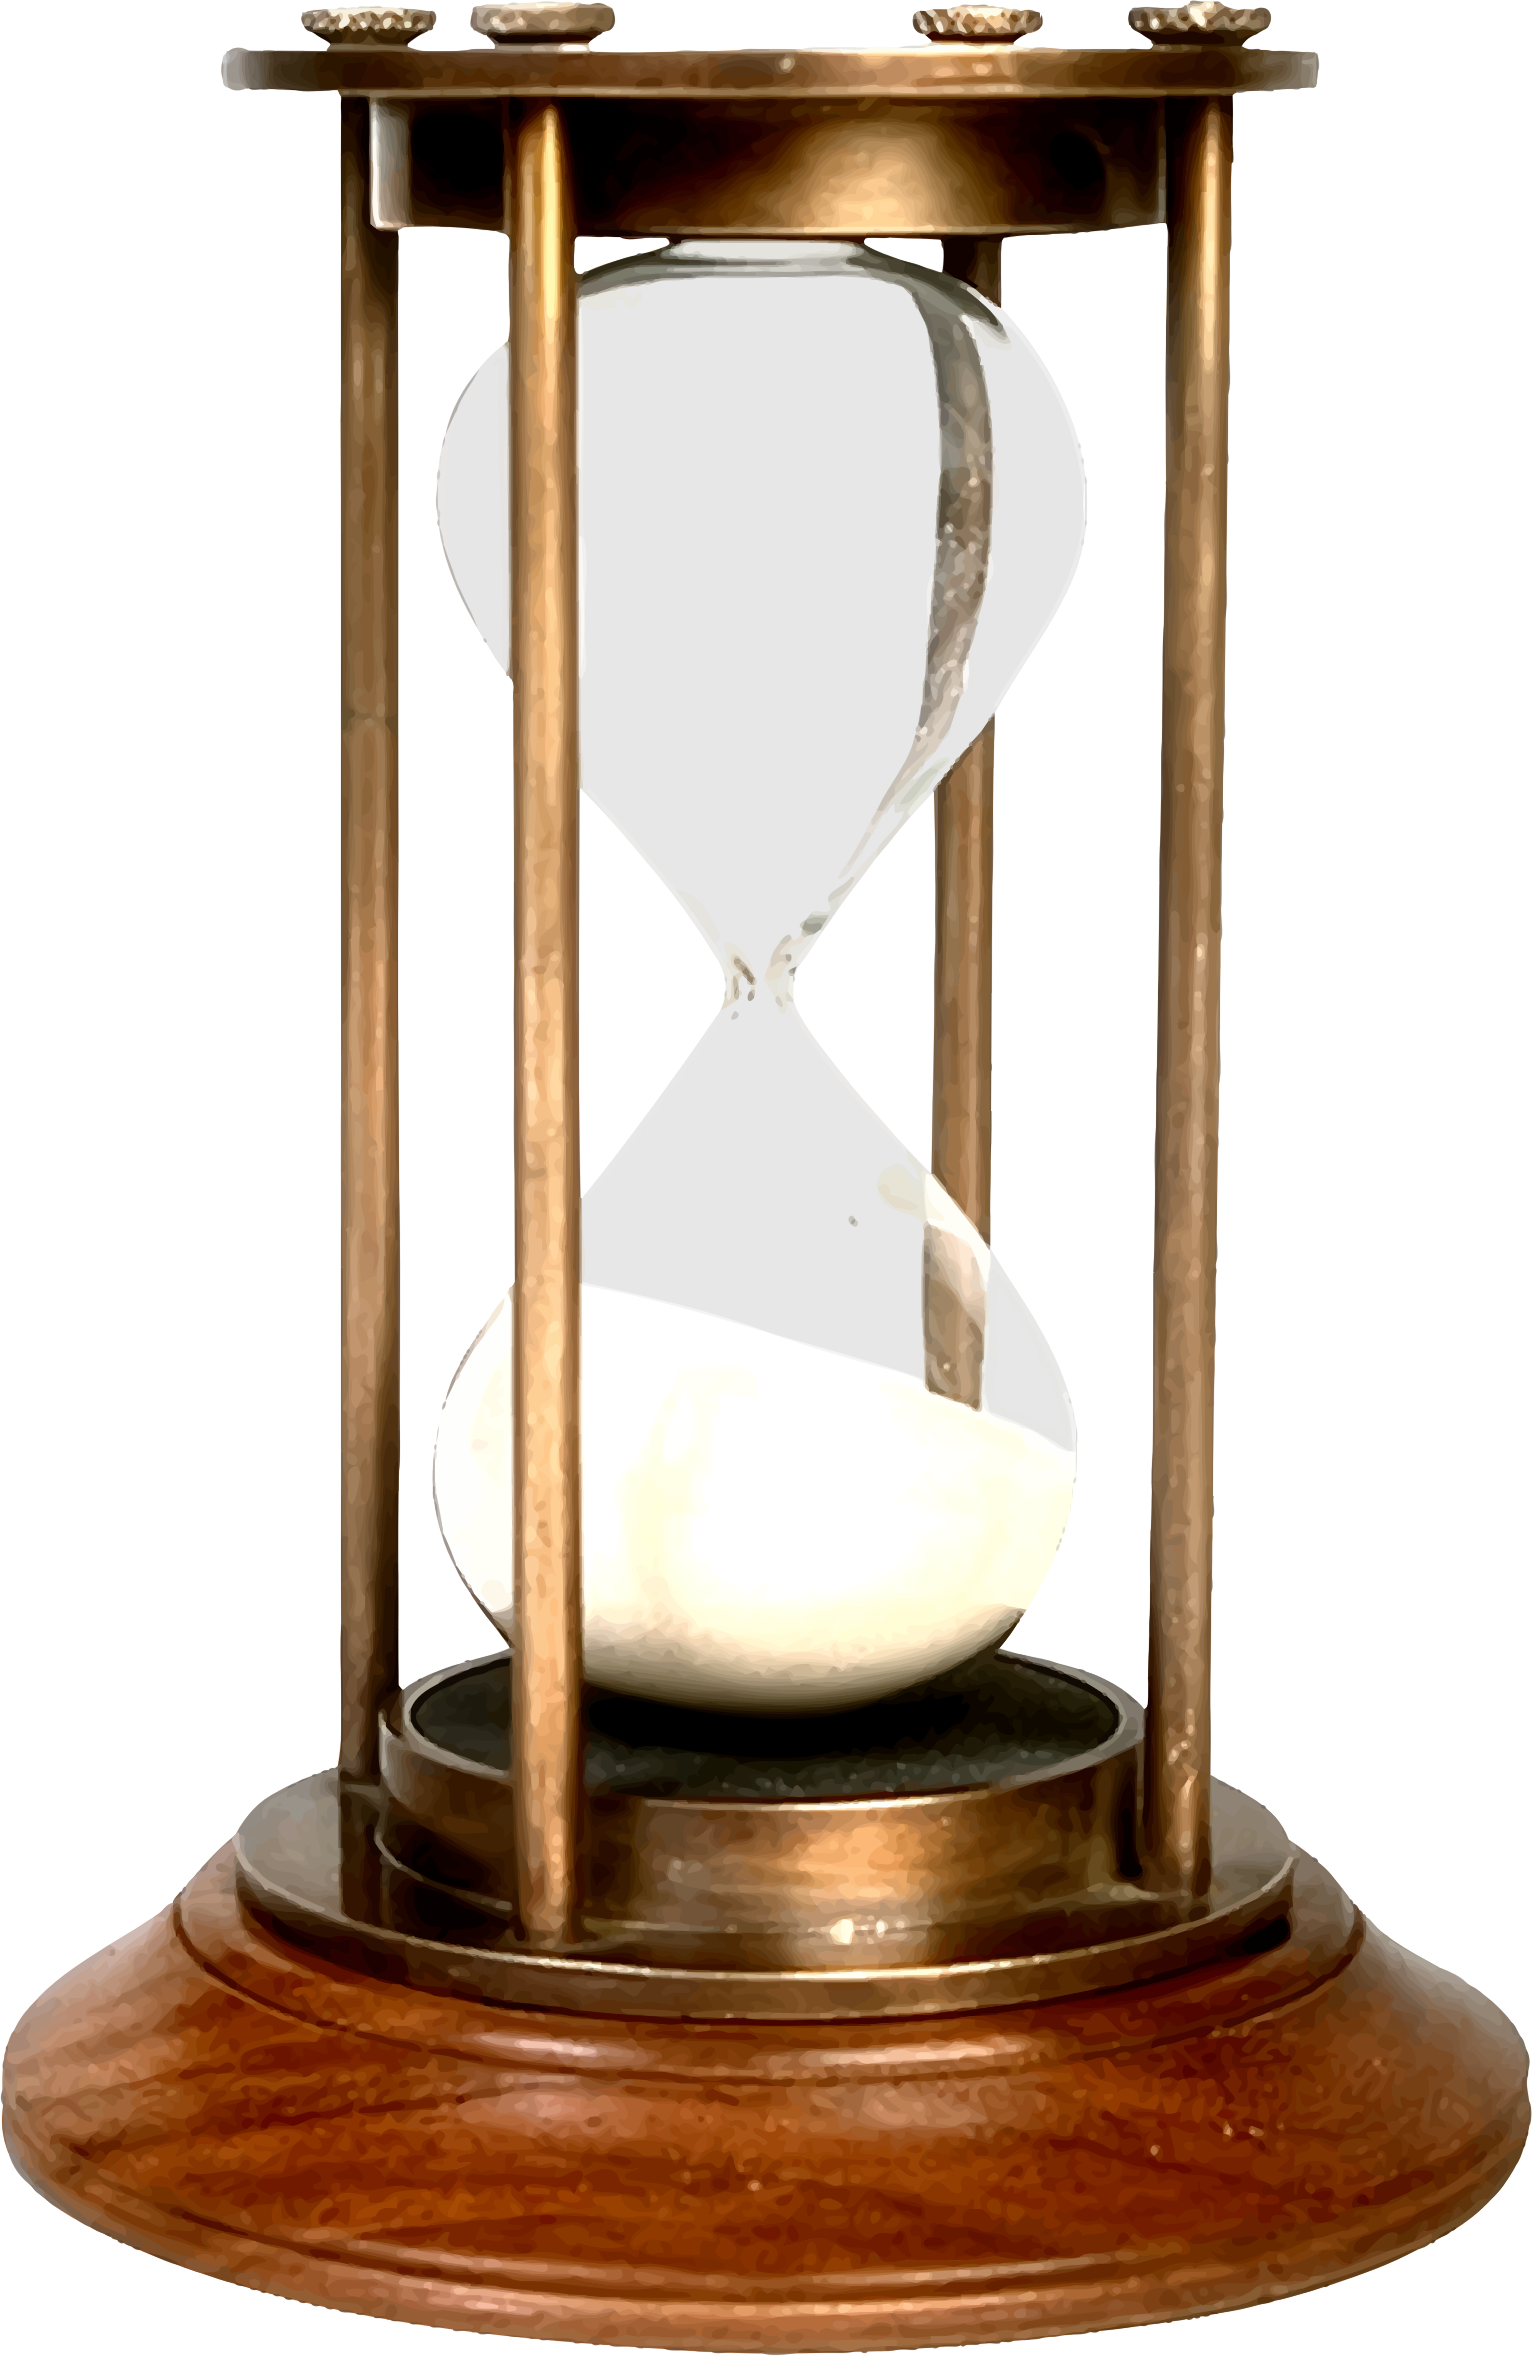 Hourglass clipart hour glass. Big image png